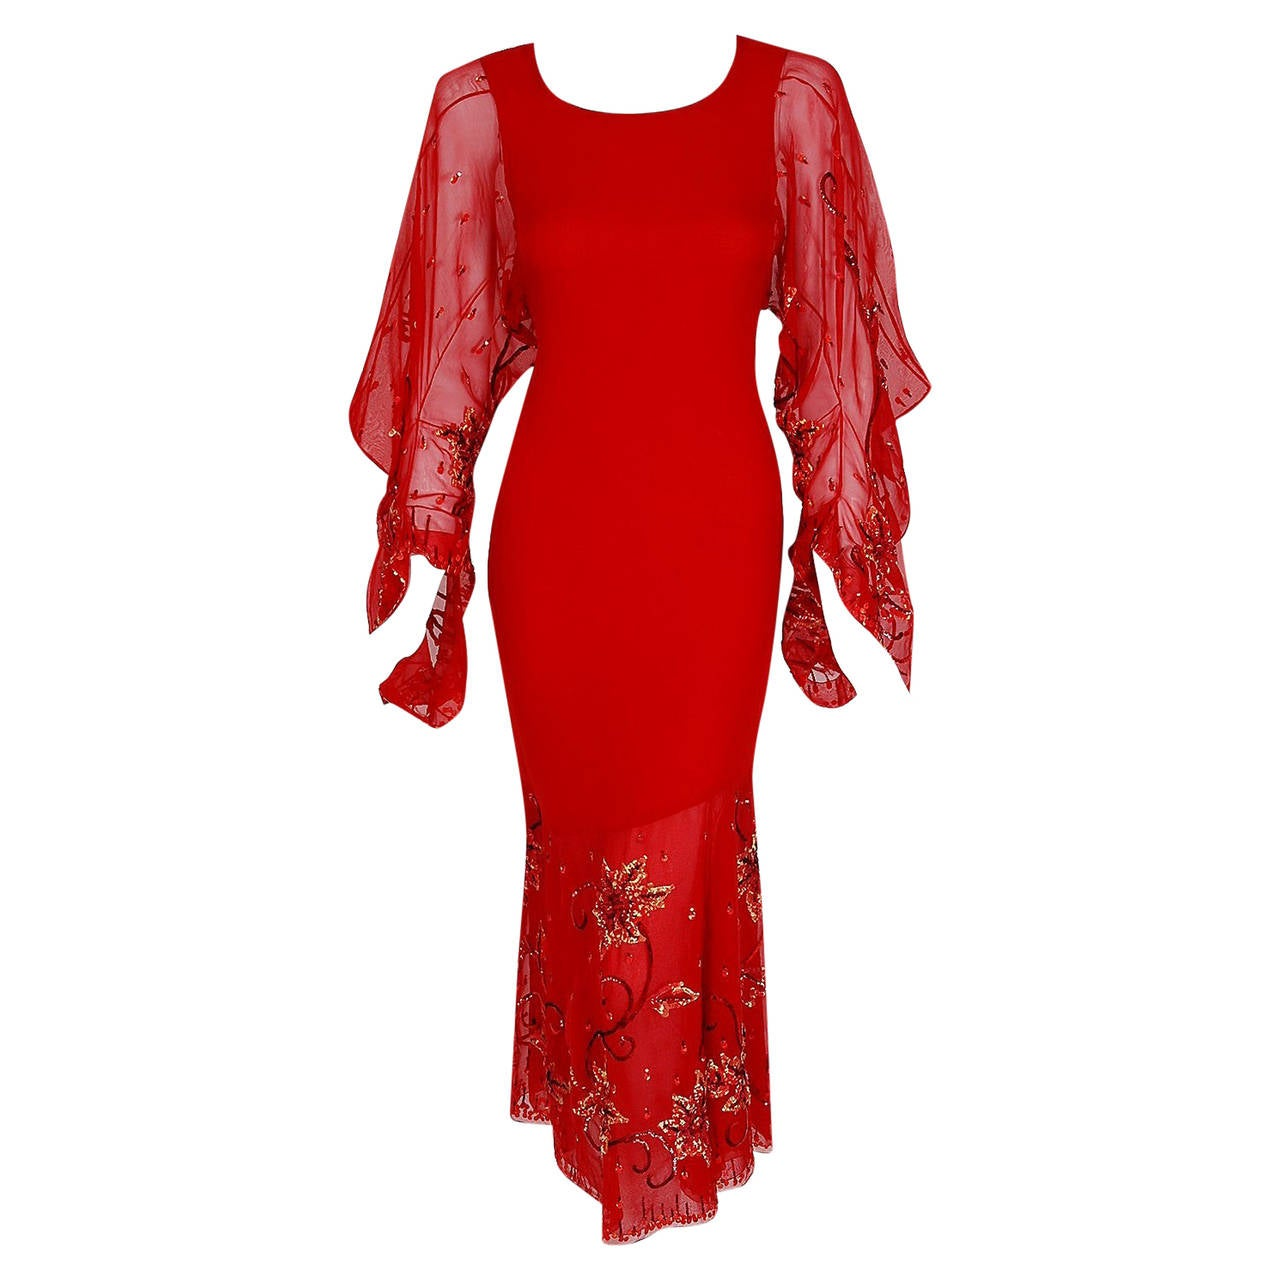 2003 Christian Dior Haute-Couture Red Beaded Chiffon Kimono-Sleeve Evening Gown 1